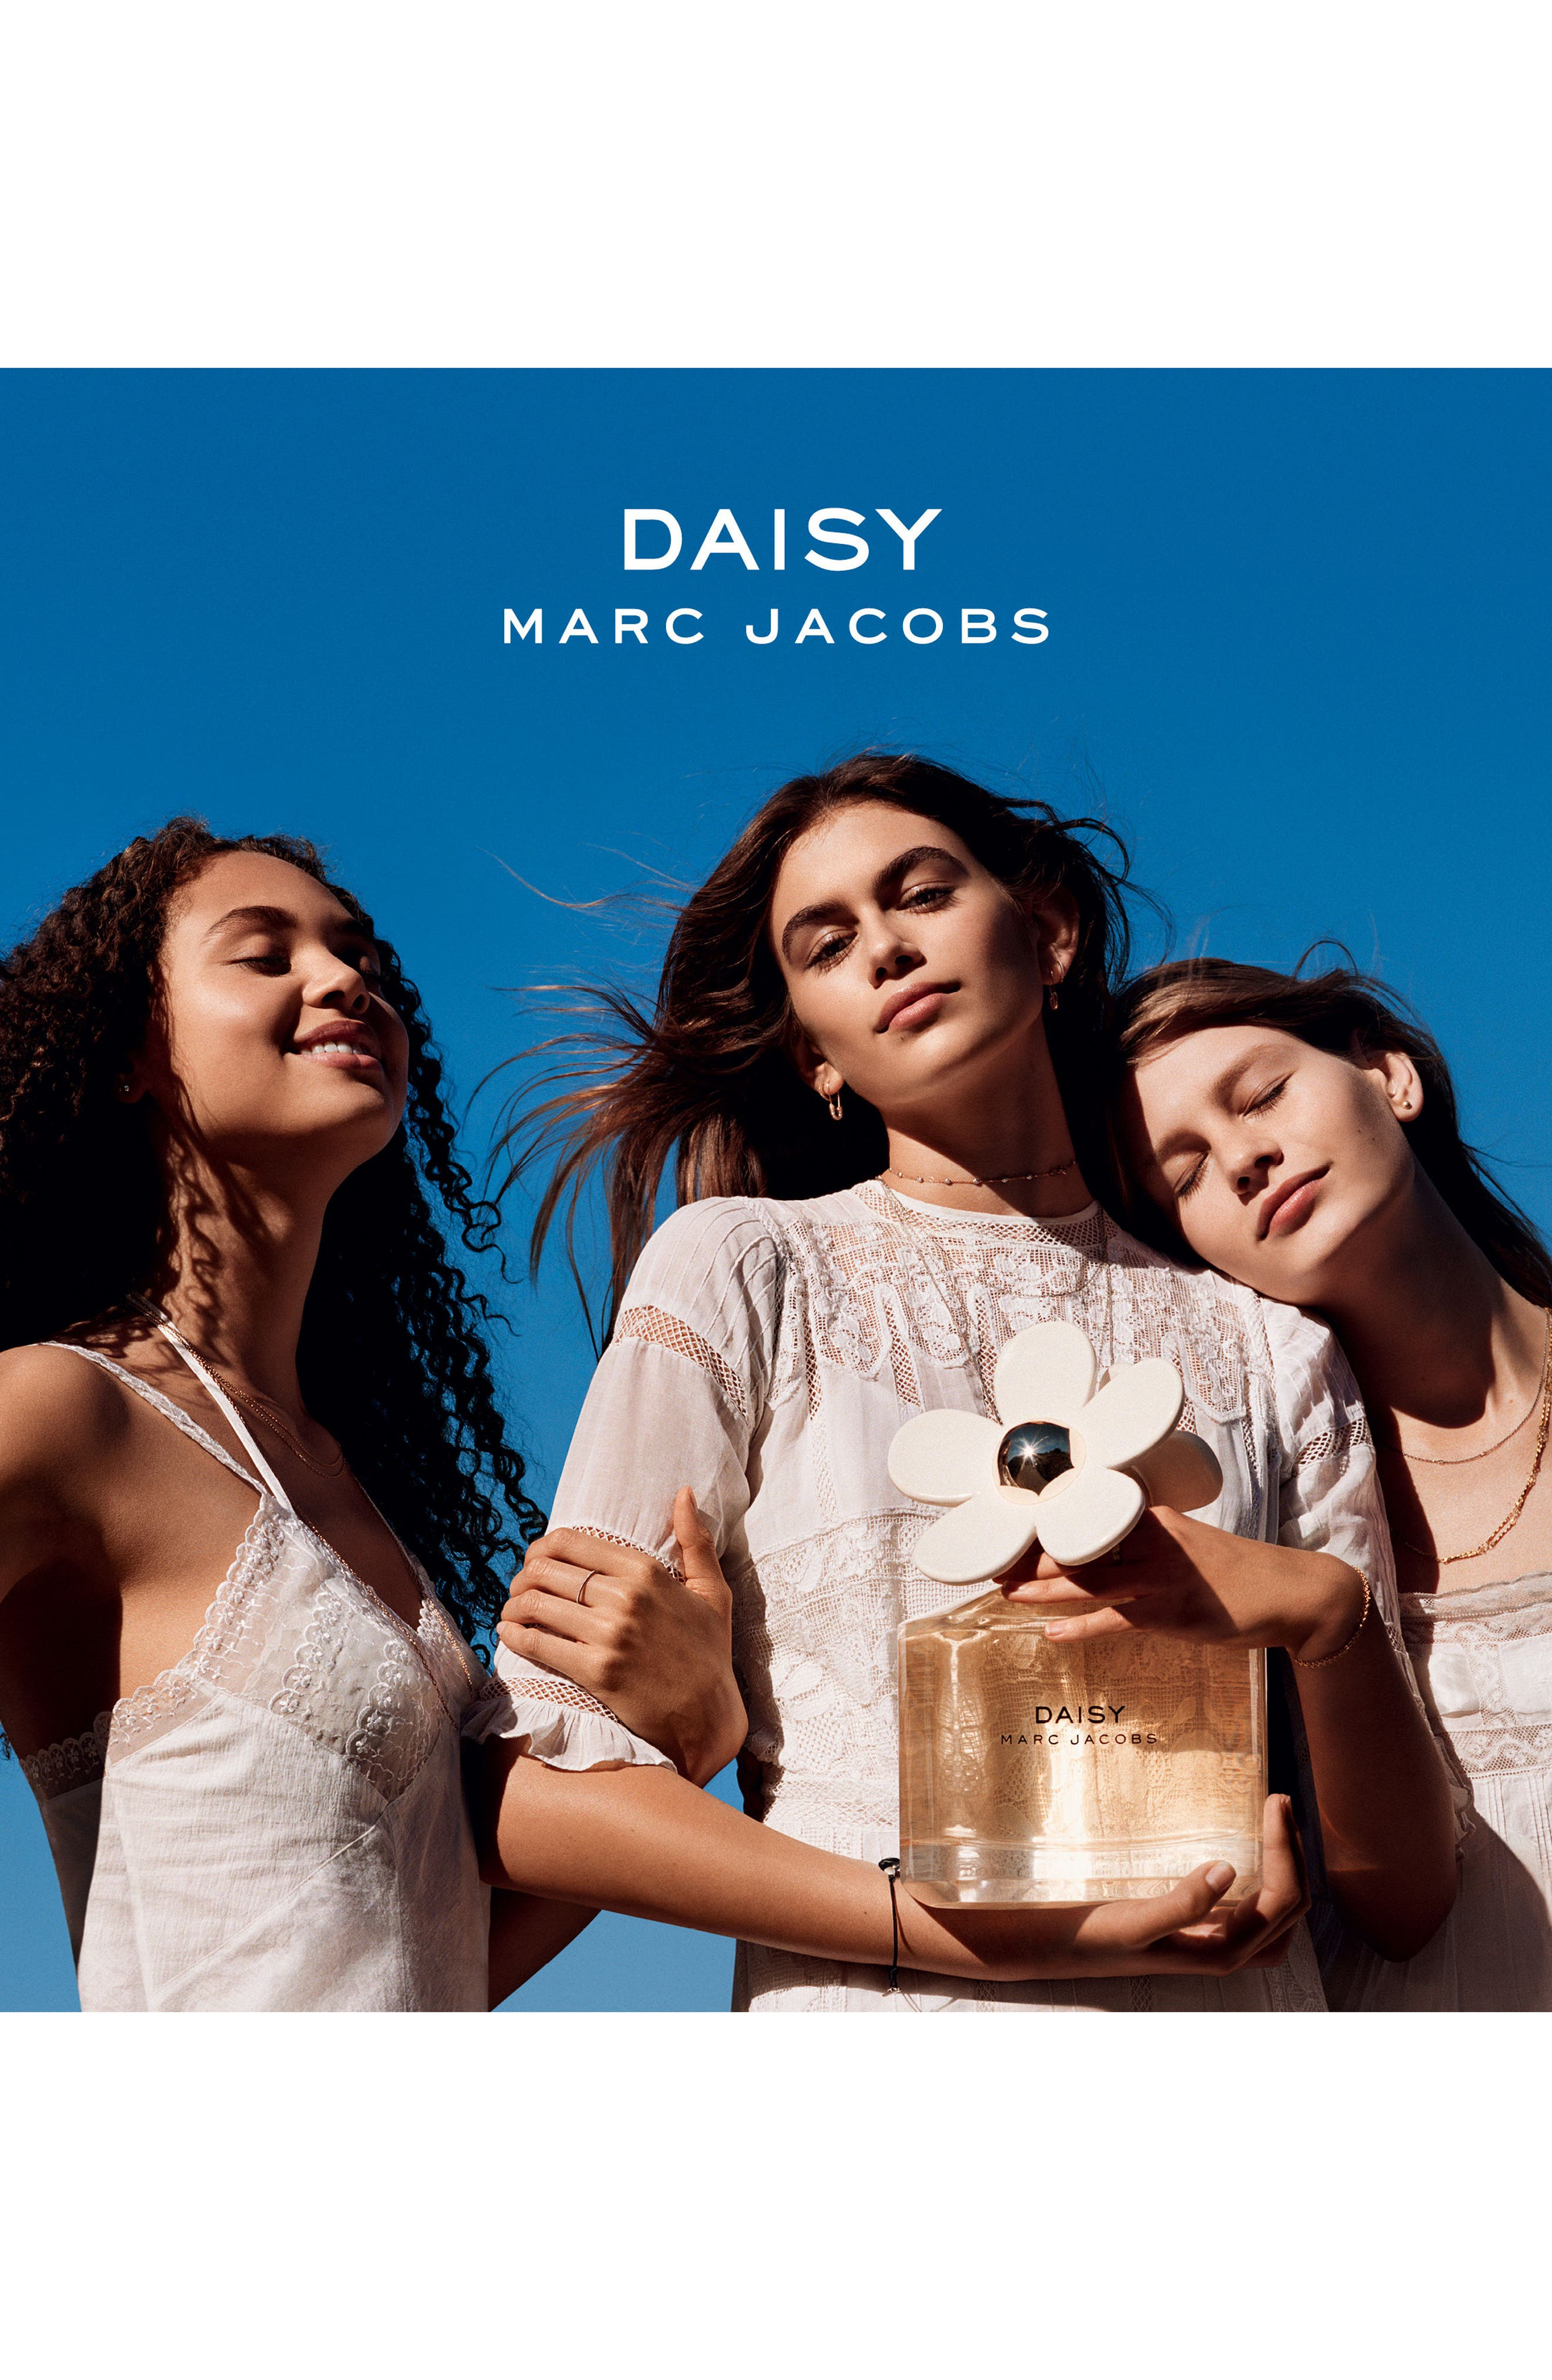 Alternate Image 3  - MARC JACOBS 'Daisy' Eau de Toilette Spray